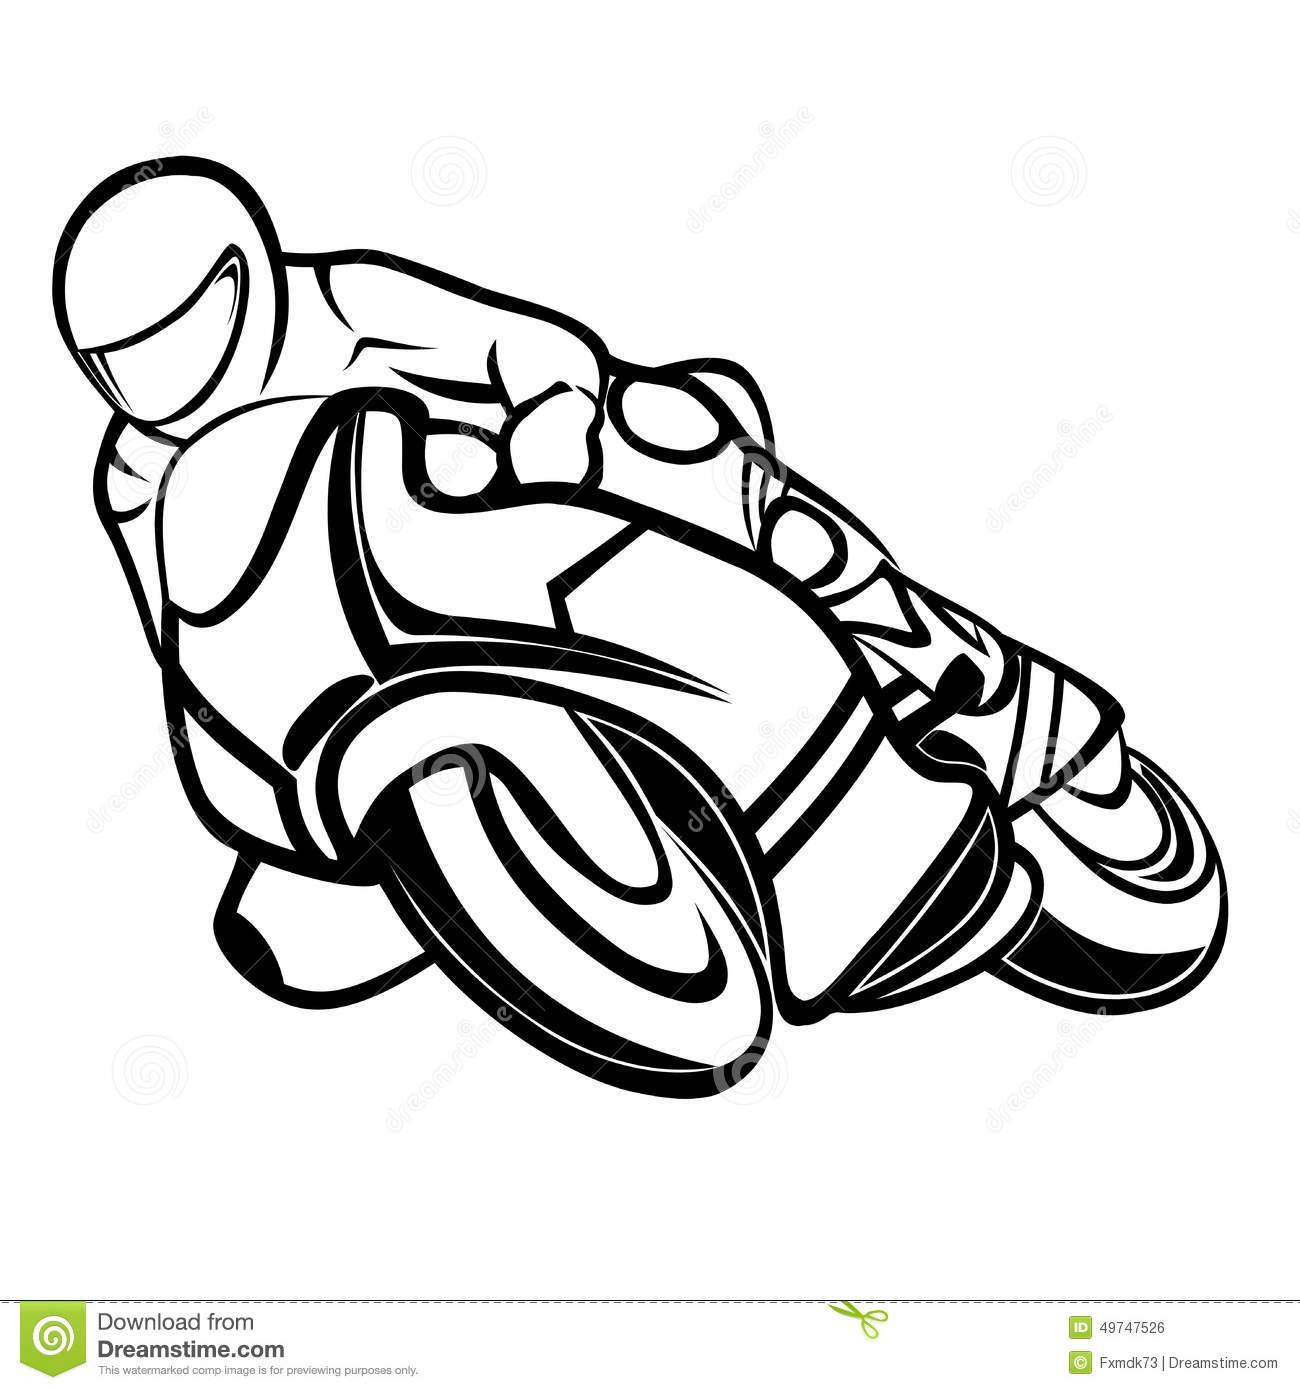 Motorbike rider stock vector. Illustration of leathers ...